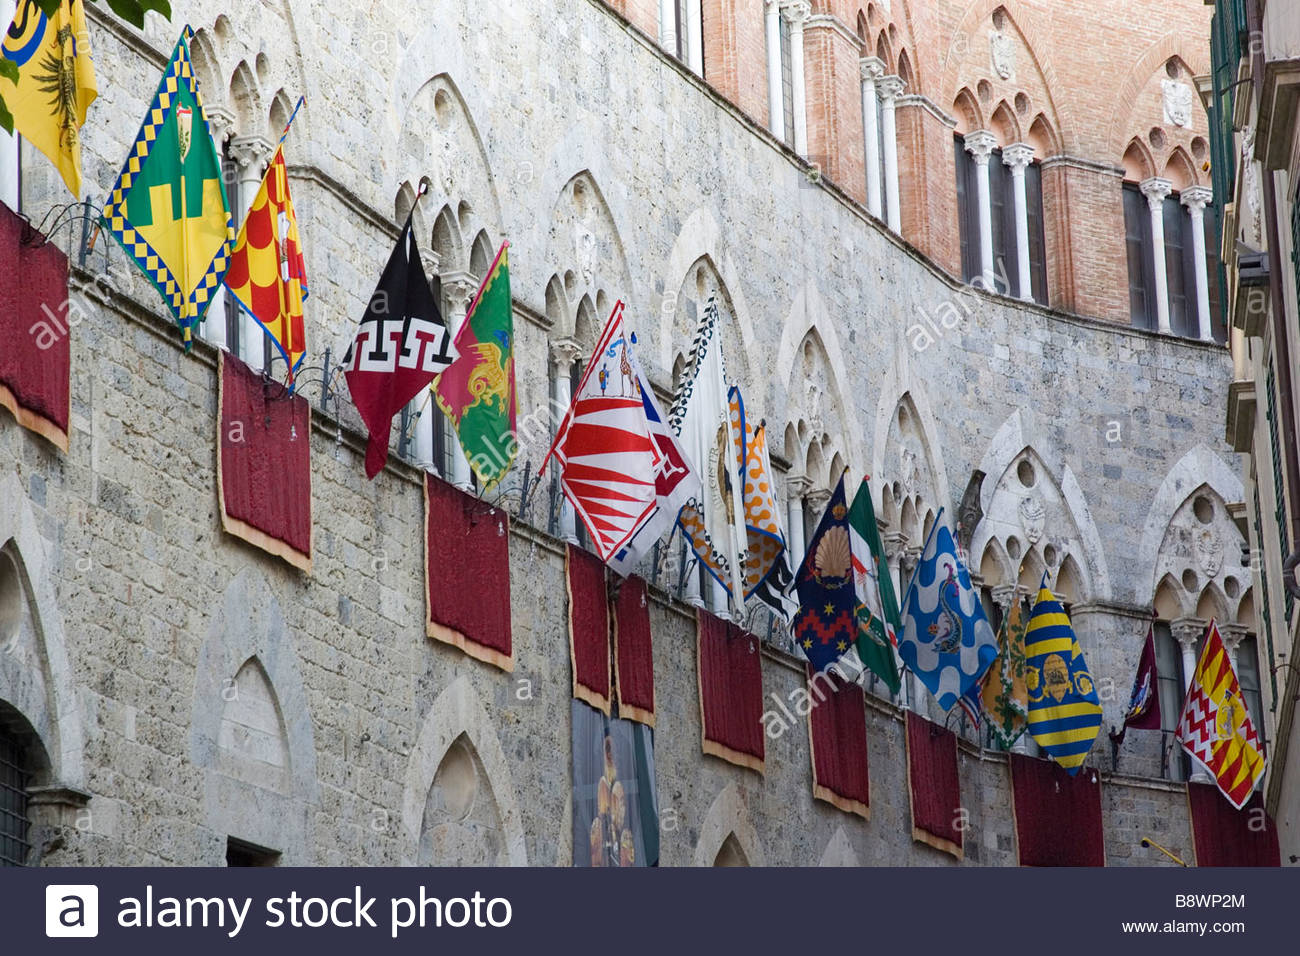 europe, italy, tuscany, siena, palio of siena, flags of the contrades of siena - Stock Image